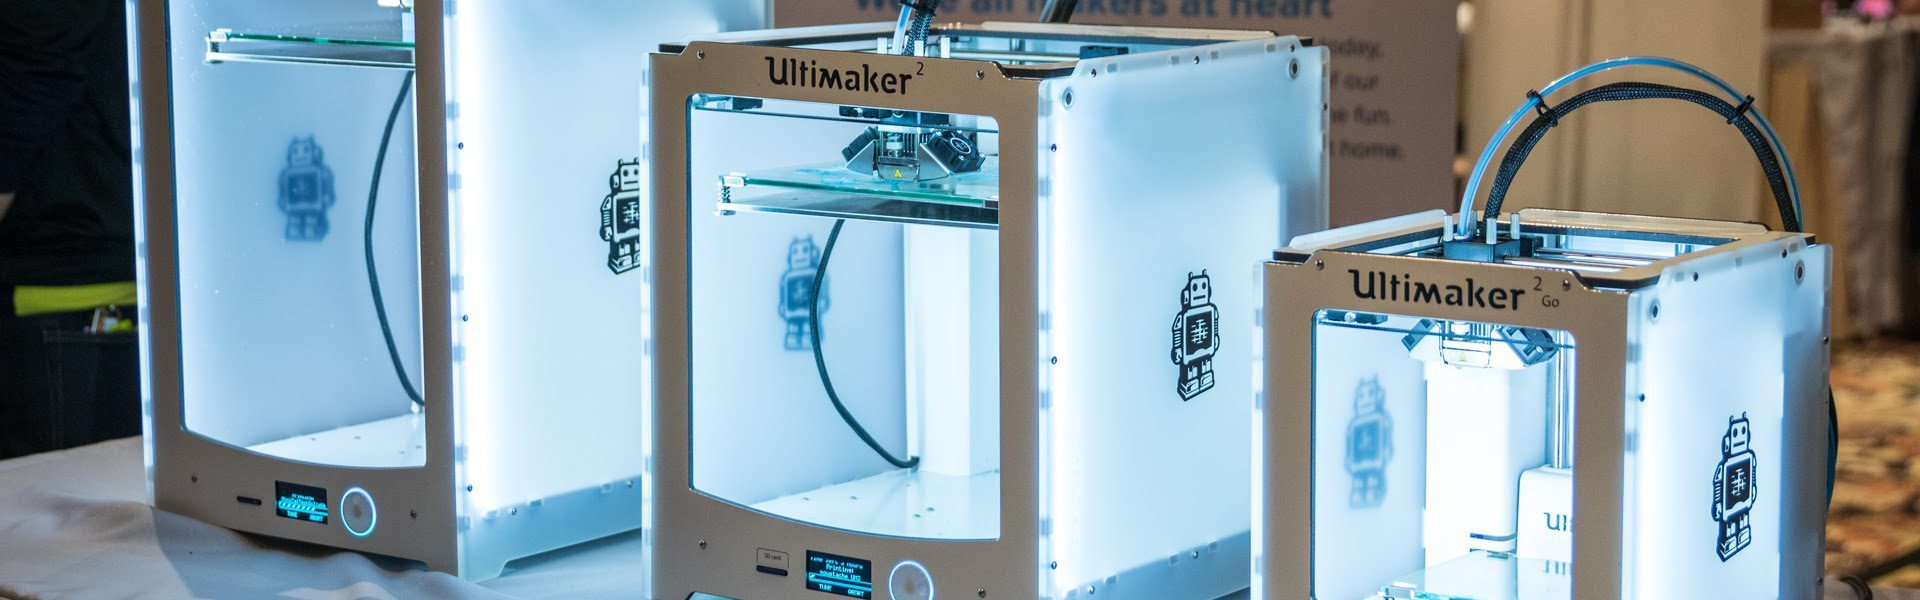 Ultimaker2 family